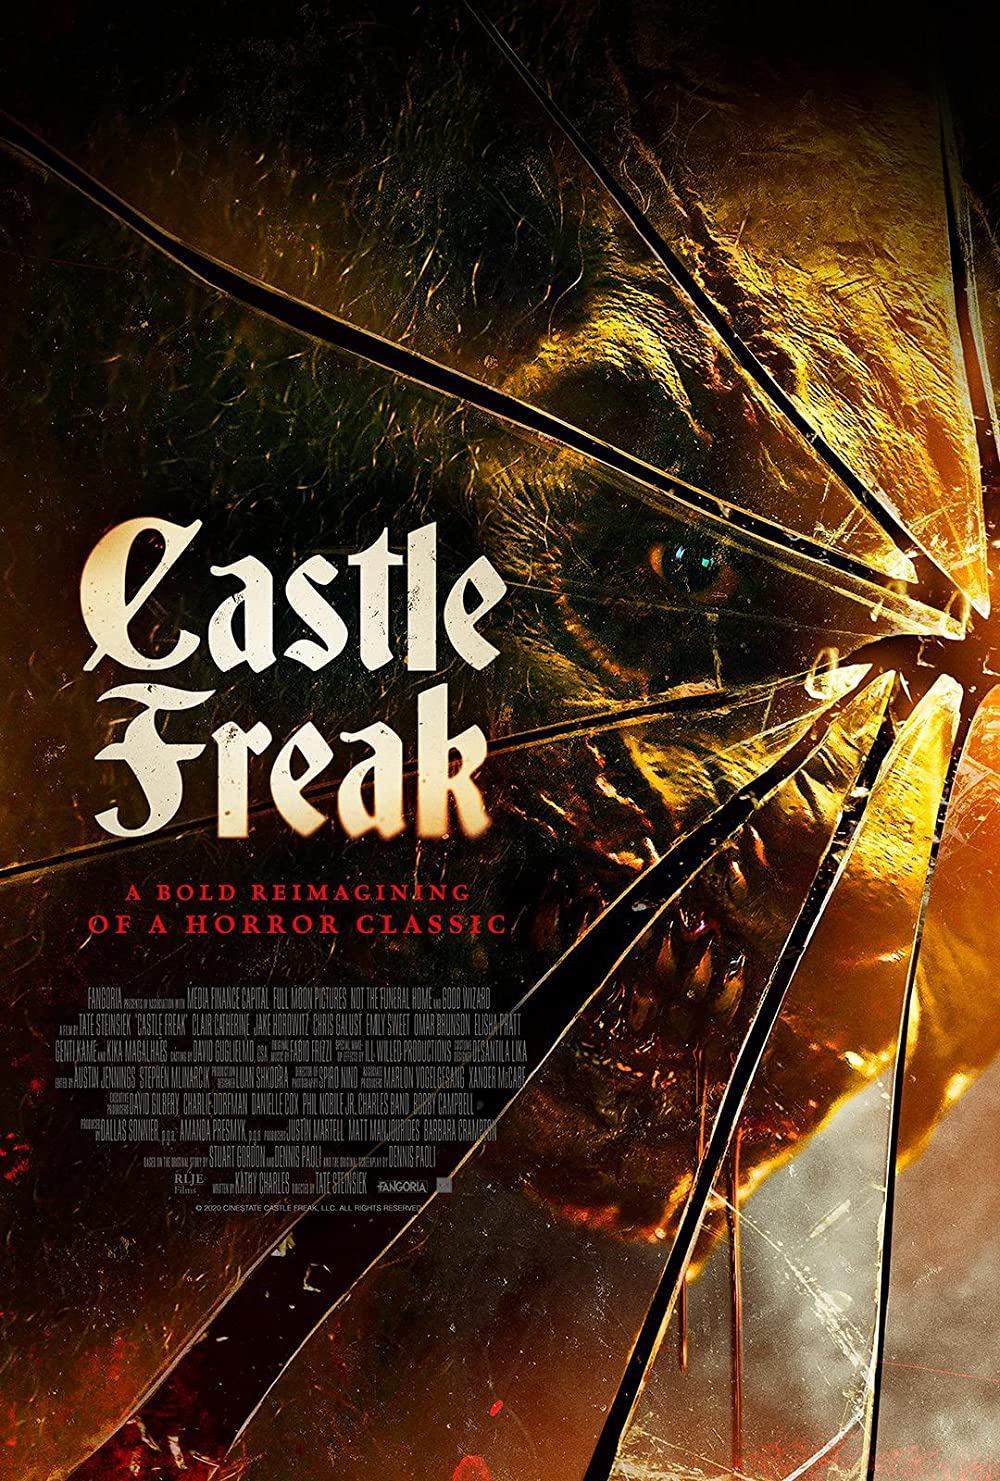 18+ Castle Freak 2020 English 1080p HDRip 1940MB Download